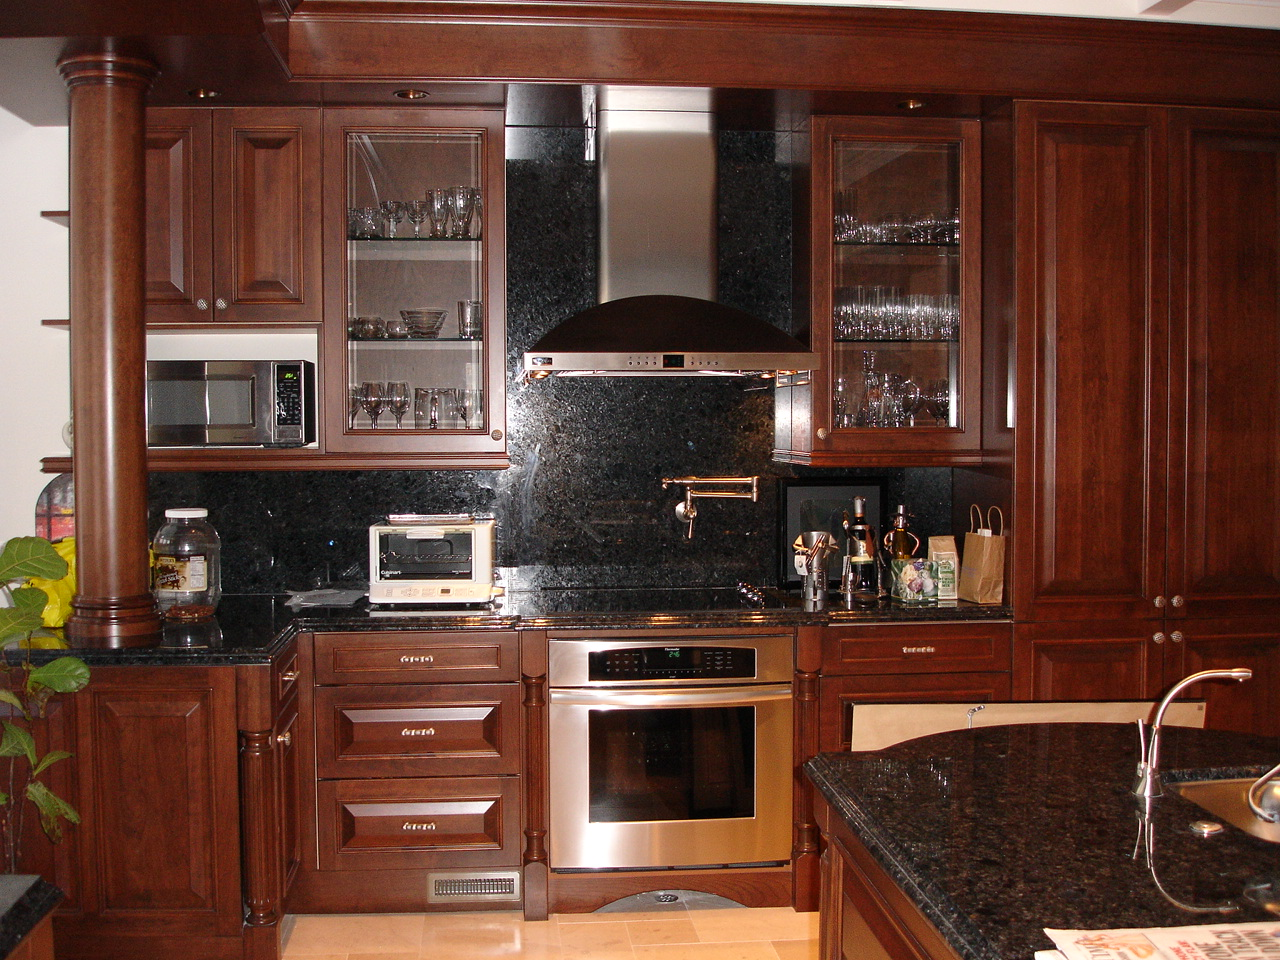 custom cabinets, granite countertops, stainless appliances